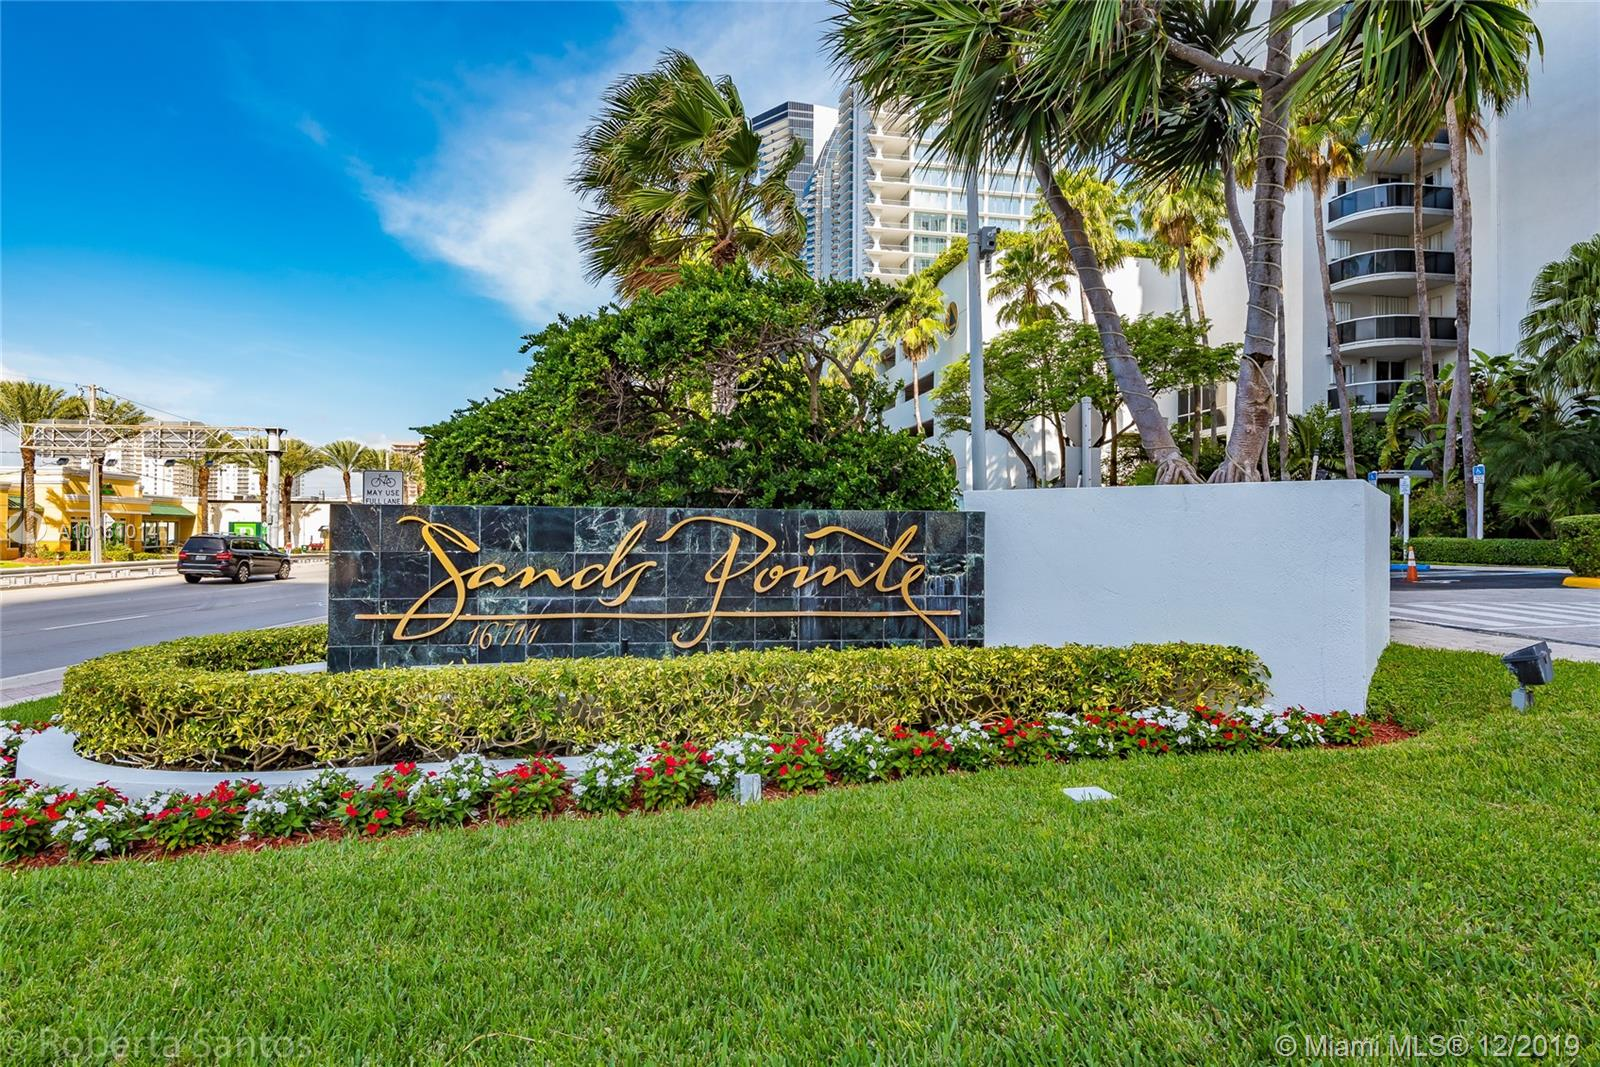 16711 Collins Ave # 1401, Sunny Isles Beach FL 33160 - Photo 1